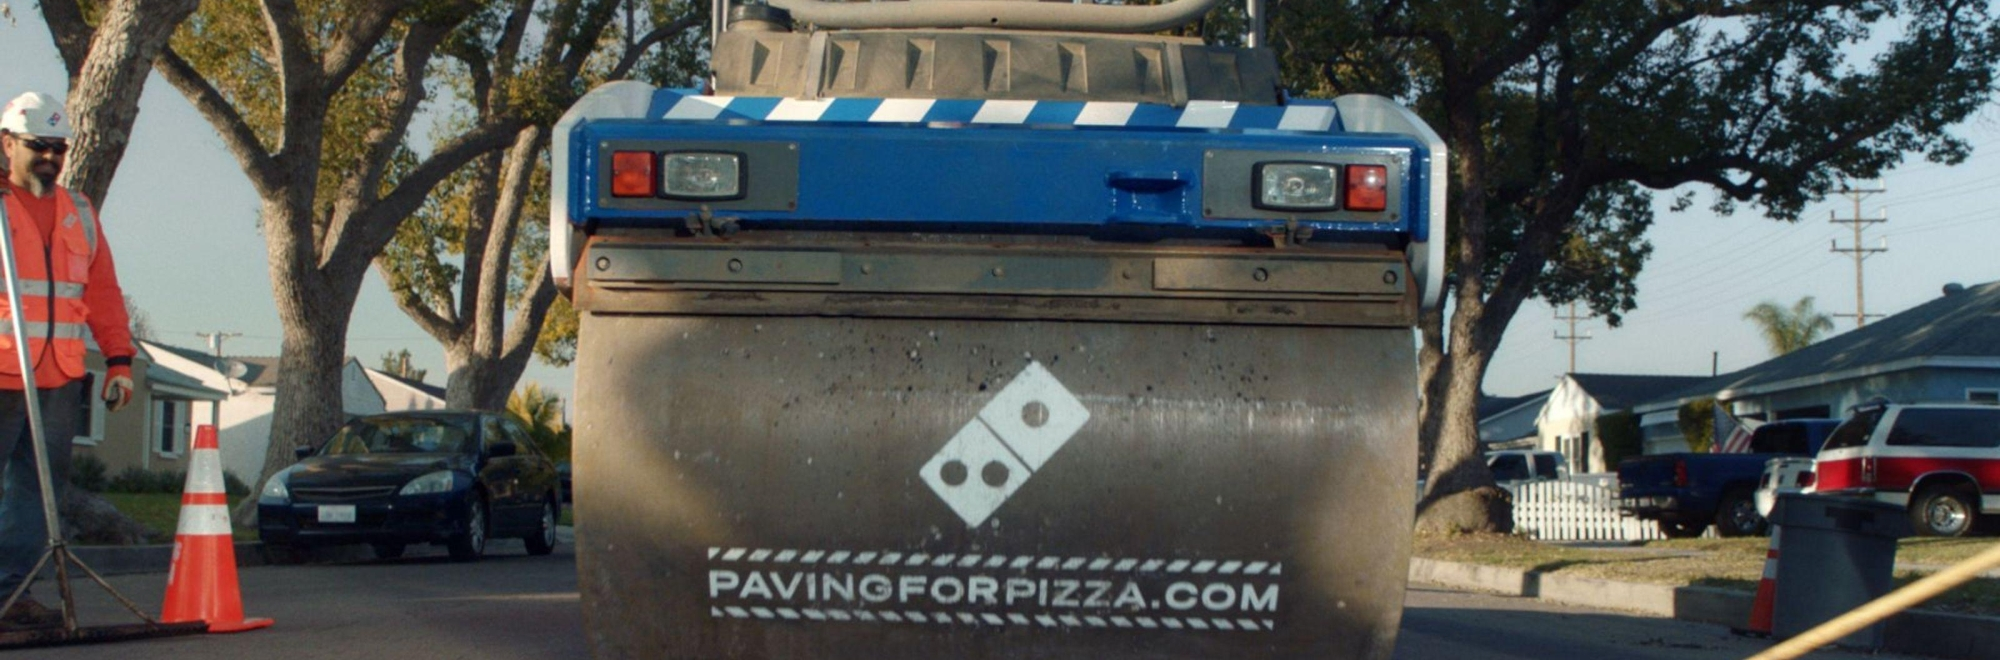 Why Domino's filled (3 of) America's pot holes!